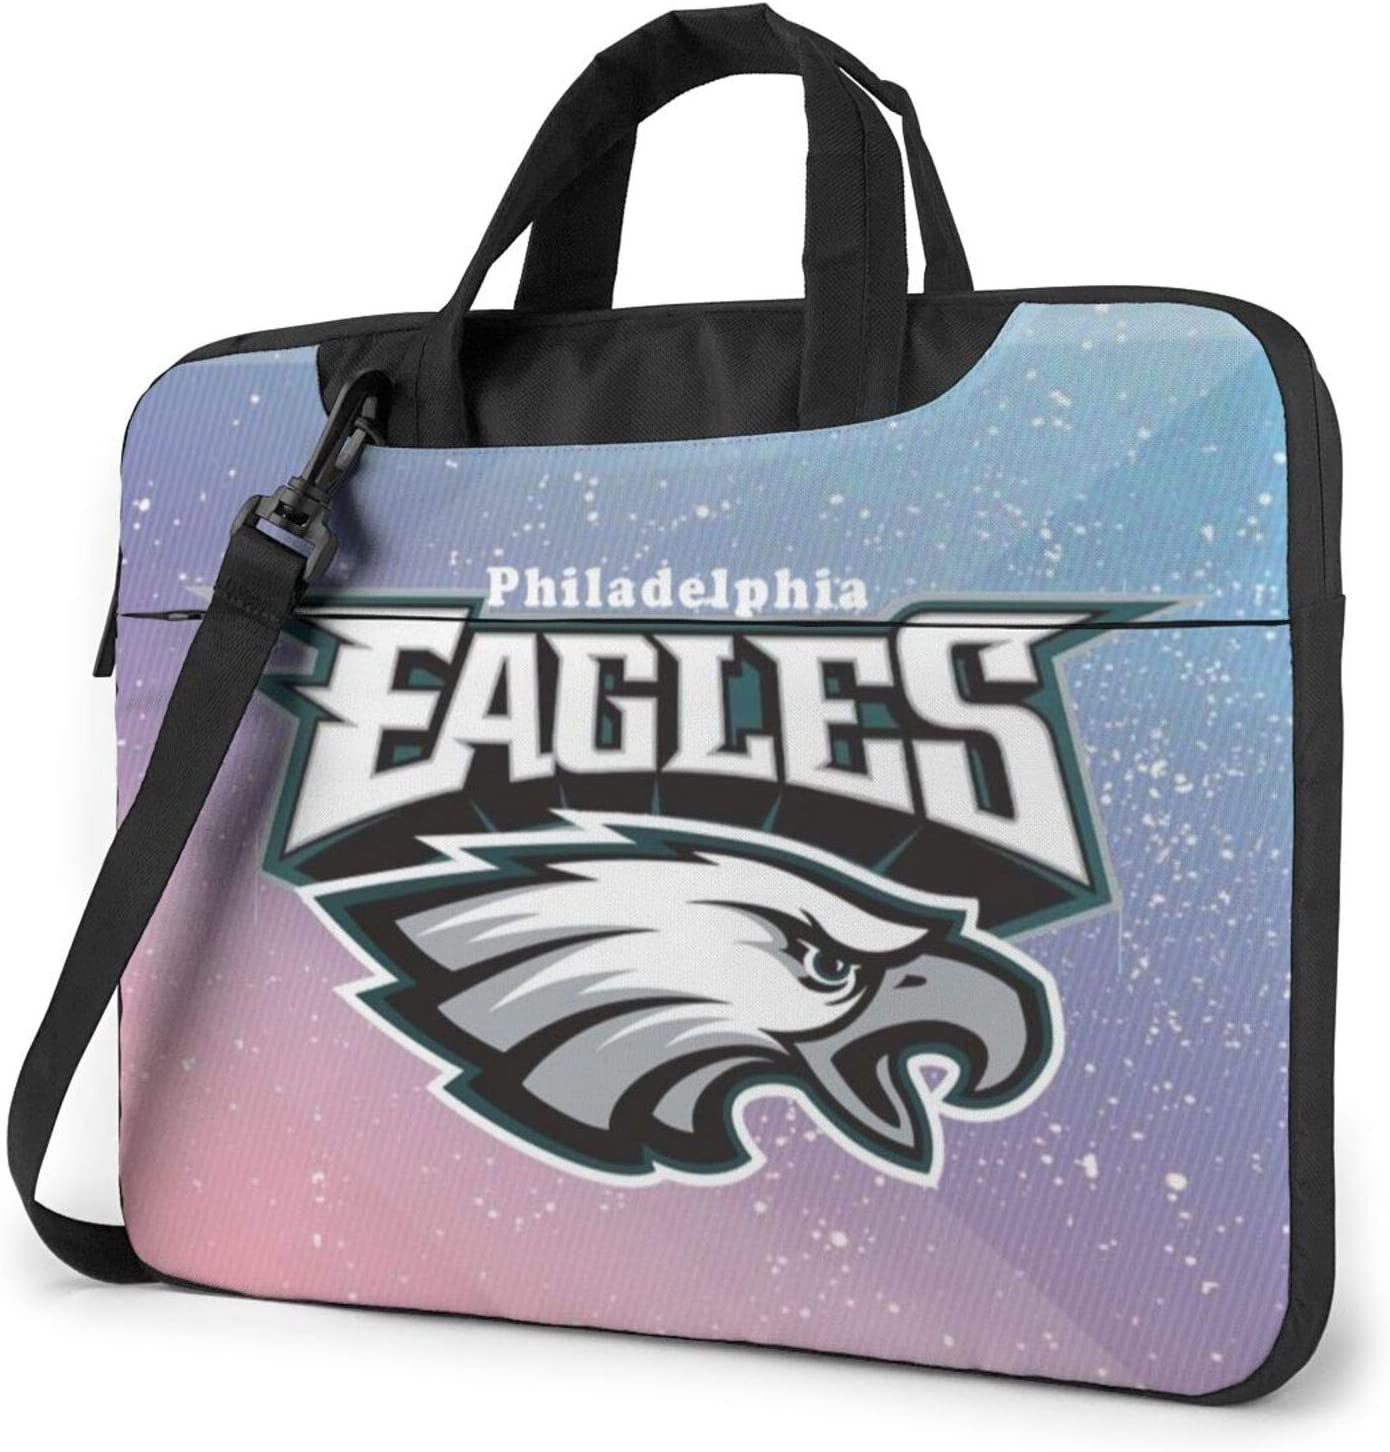 Philadelphia Eagles Laptop Bag,360 Protective Shock-Proof Shoulder Bag Briefcase Handbag for Men Women 15.6 inch